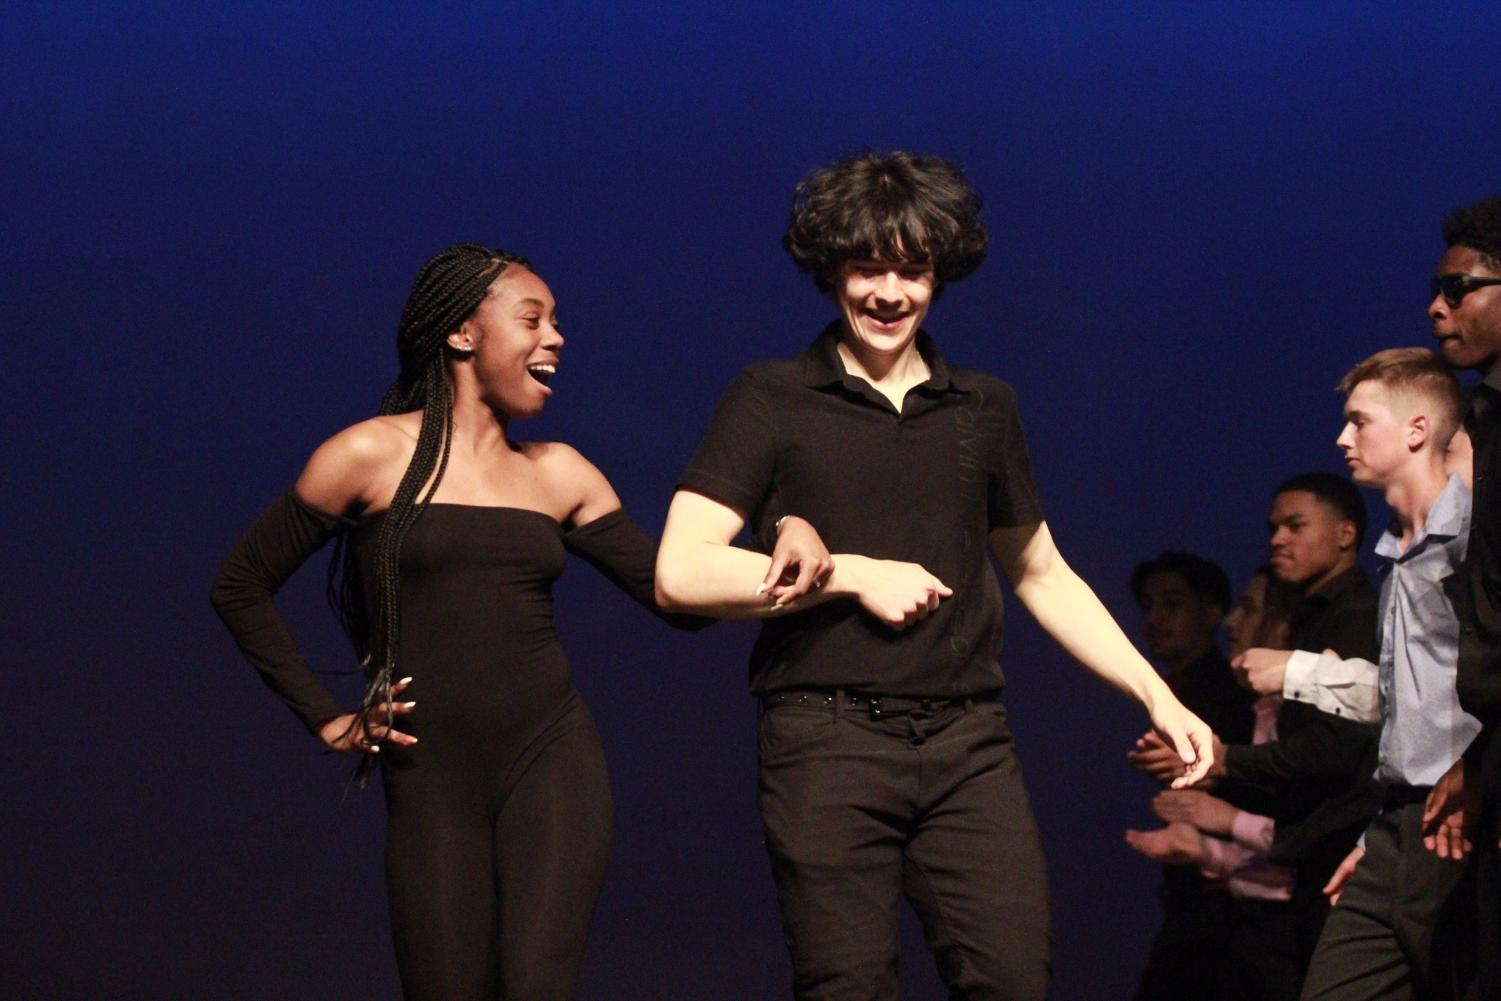 Seniors+Phillip+Kostin+and+his+escort+A%27Shanti+Roger+dance+during+the+opening+performance+during+the+Mr.+Watkins+Mill+Contest.